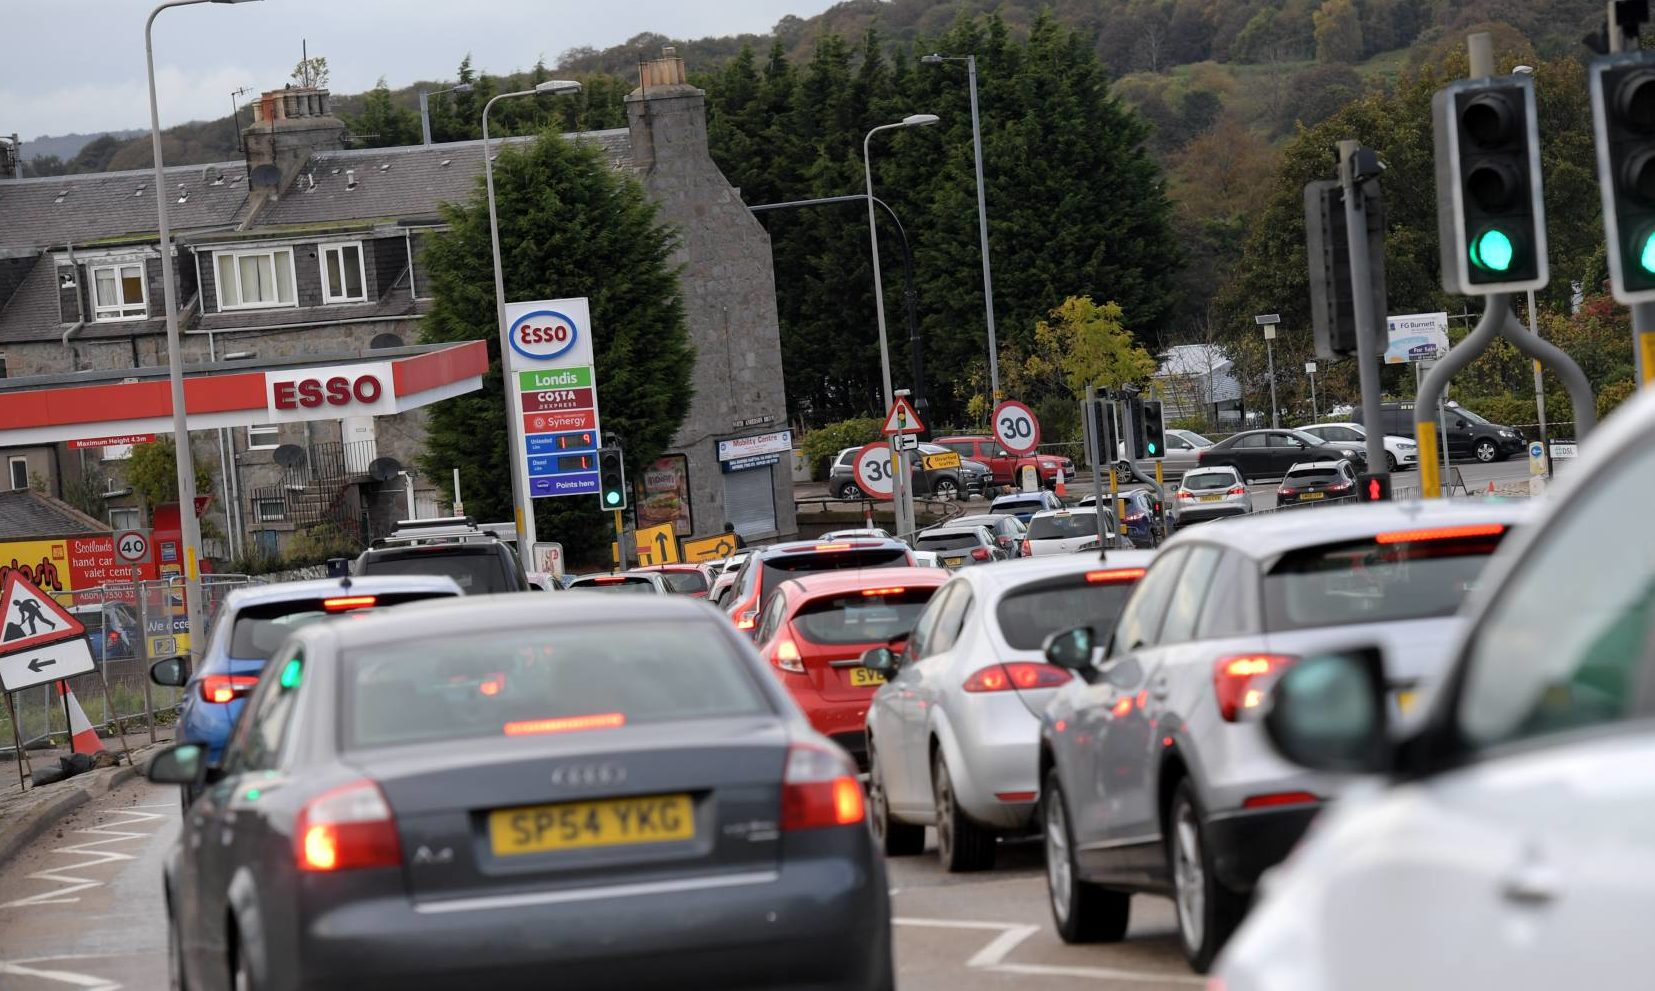 Traffic at a standstill at the Haudagain roundabout. Picture by Kath Flannery.